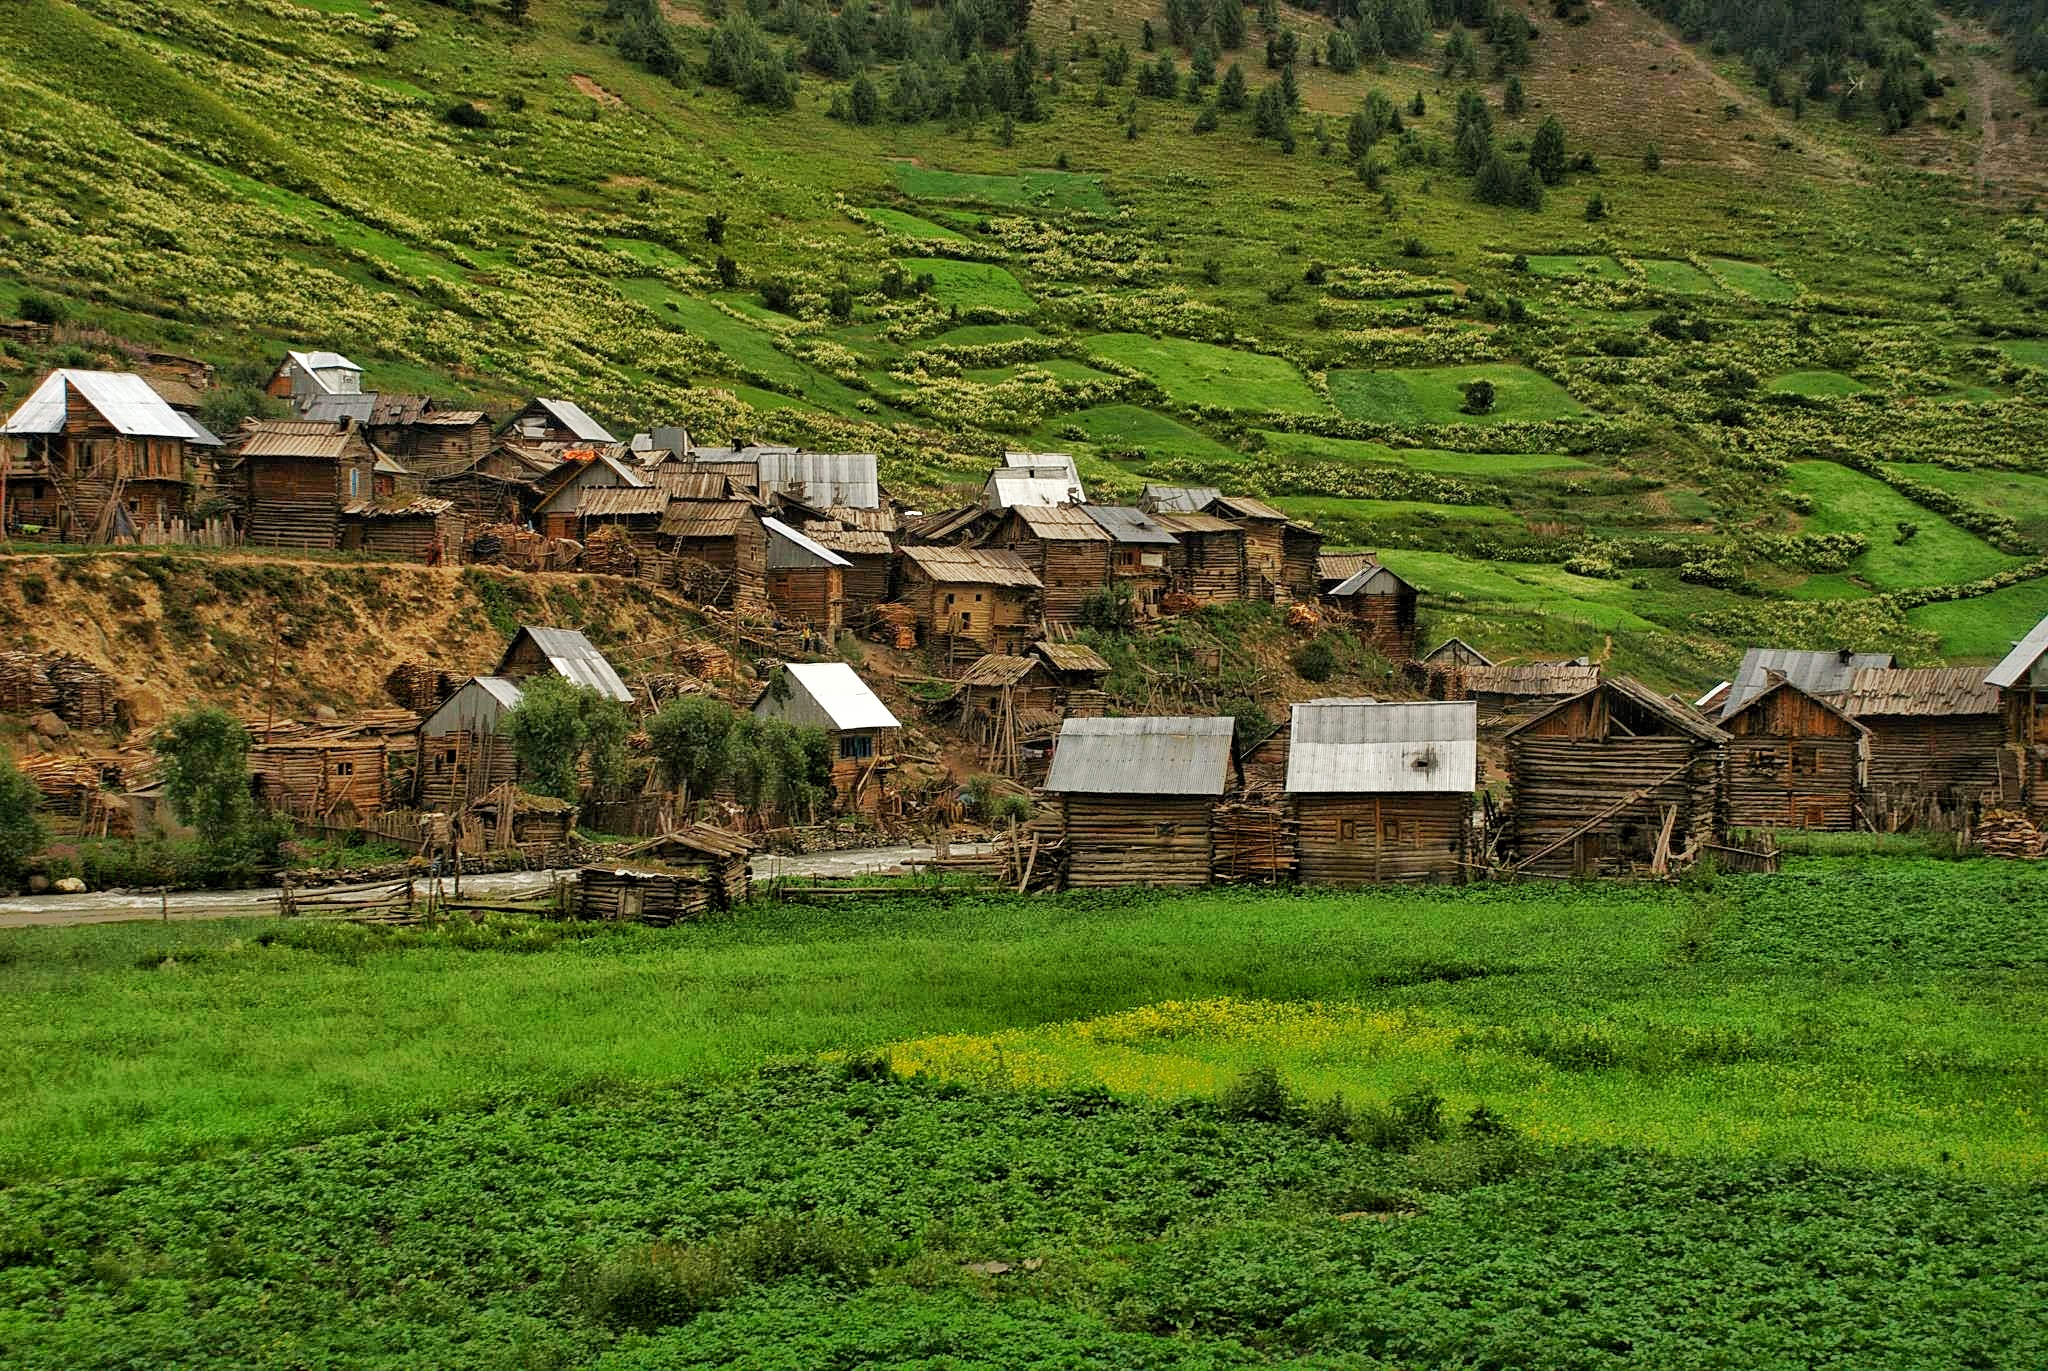 A typical Village in Gurez with most houses constructed out of Wooden logs.